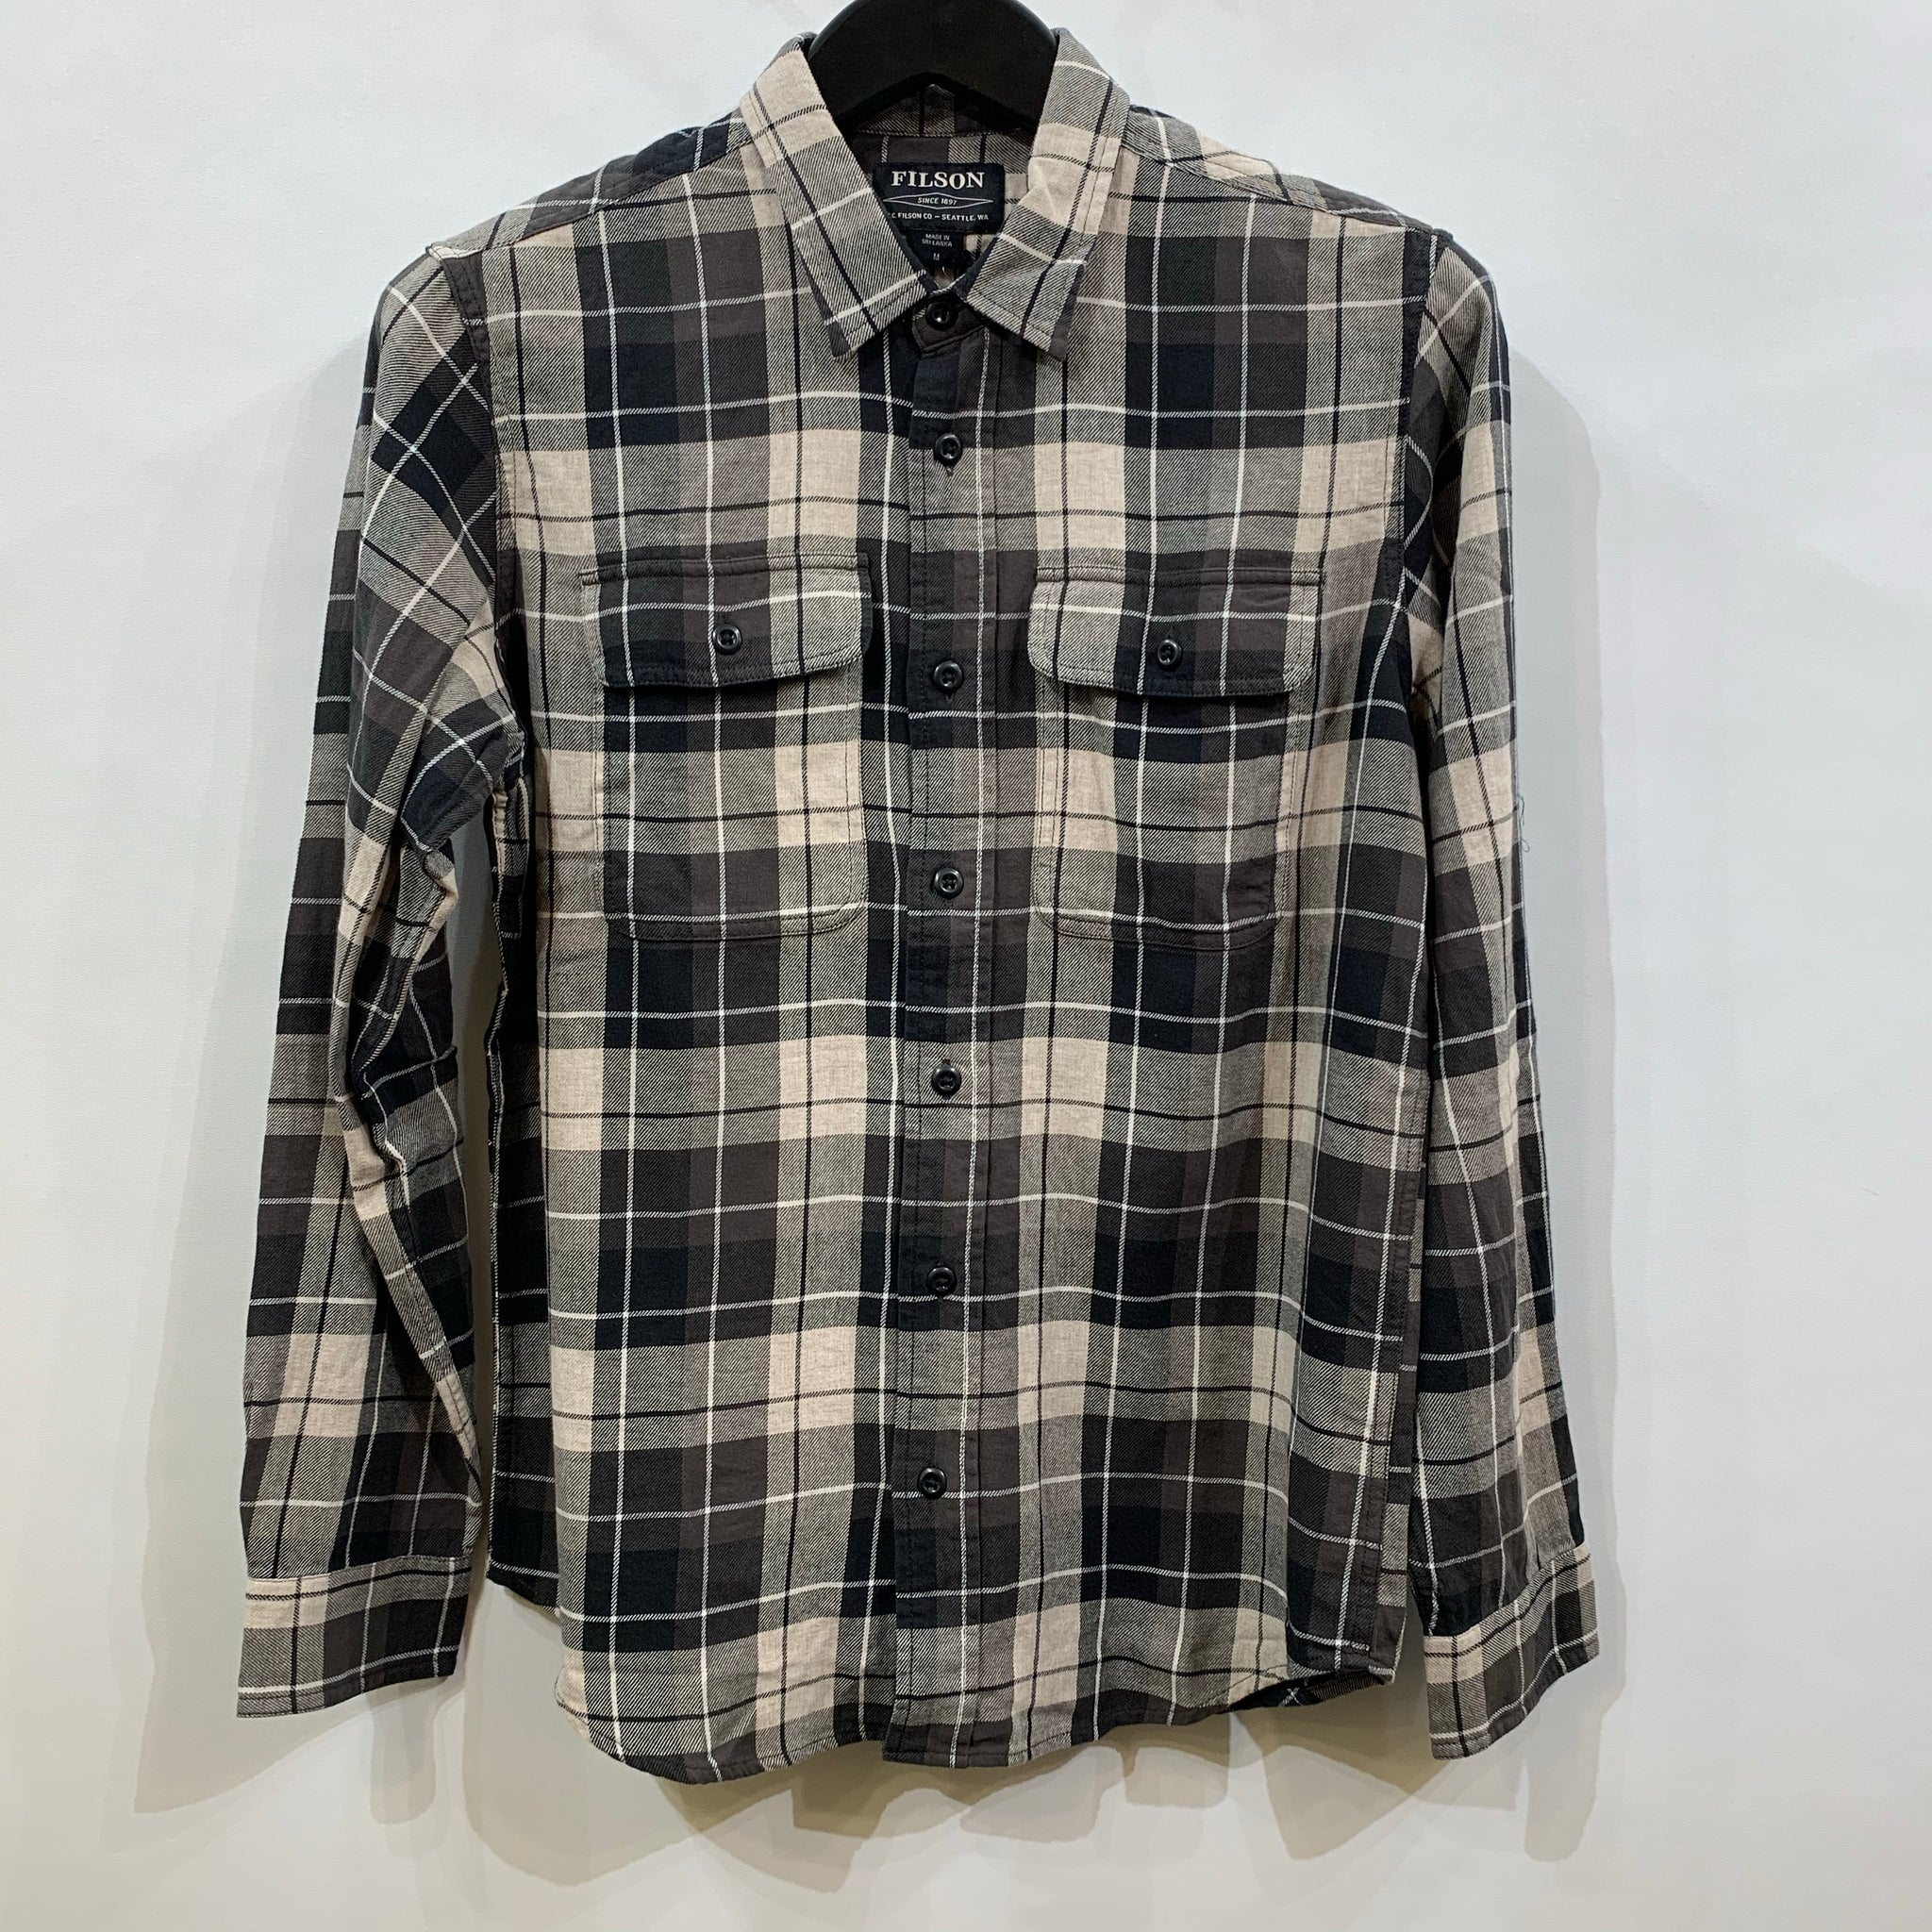 Filson - Scout Olive plaid checked shirt